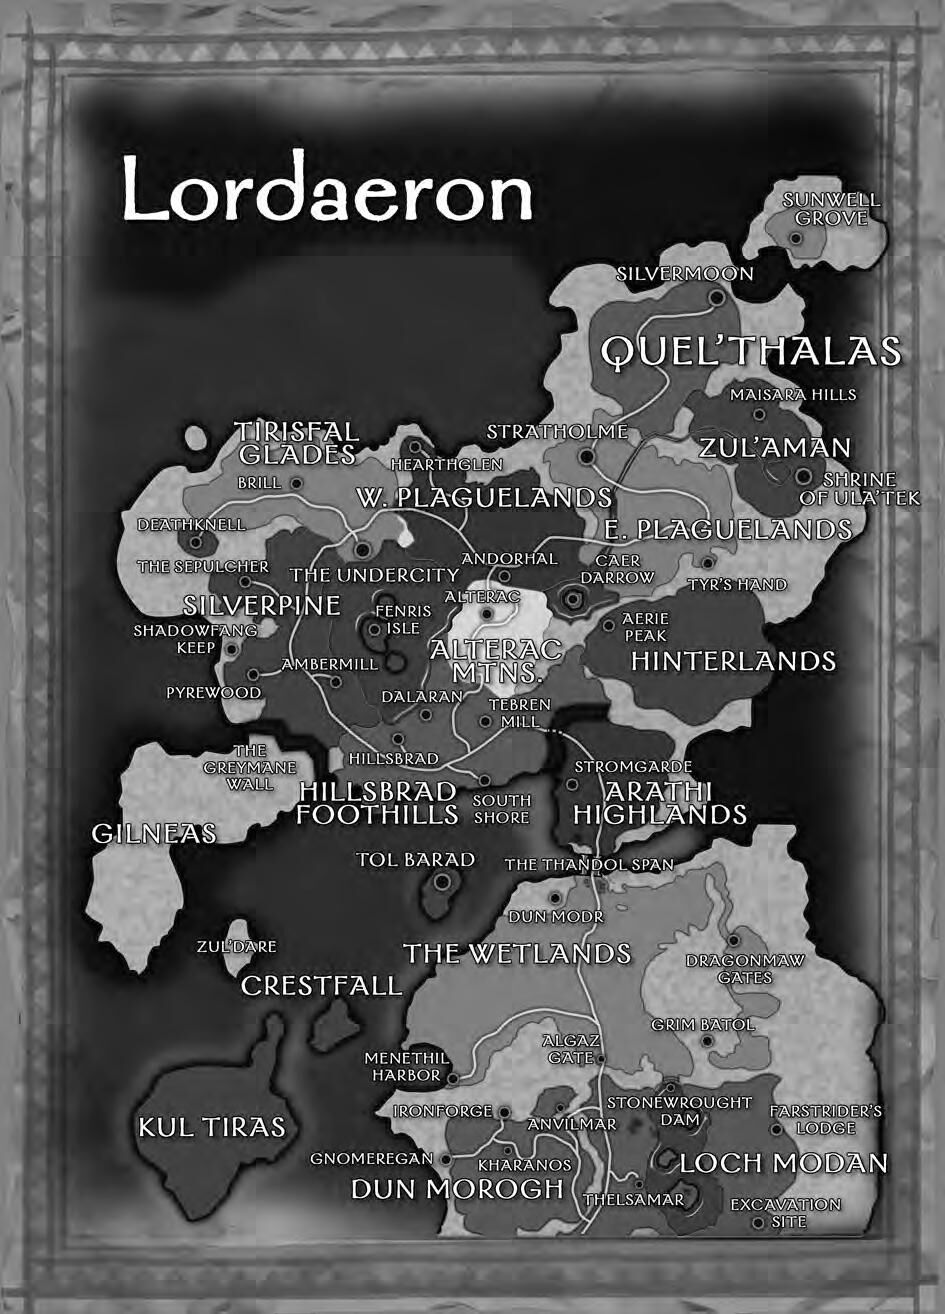 Zul'Dare on the Wrold of Warcraft Manual Map.